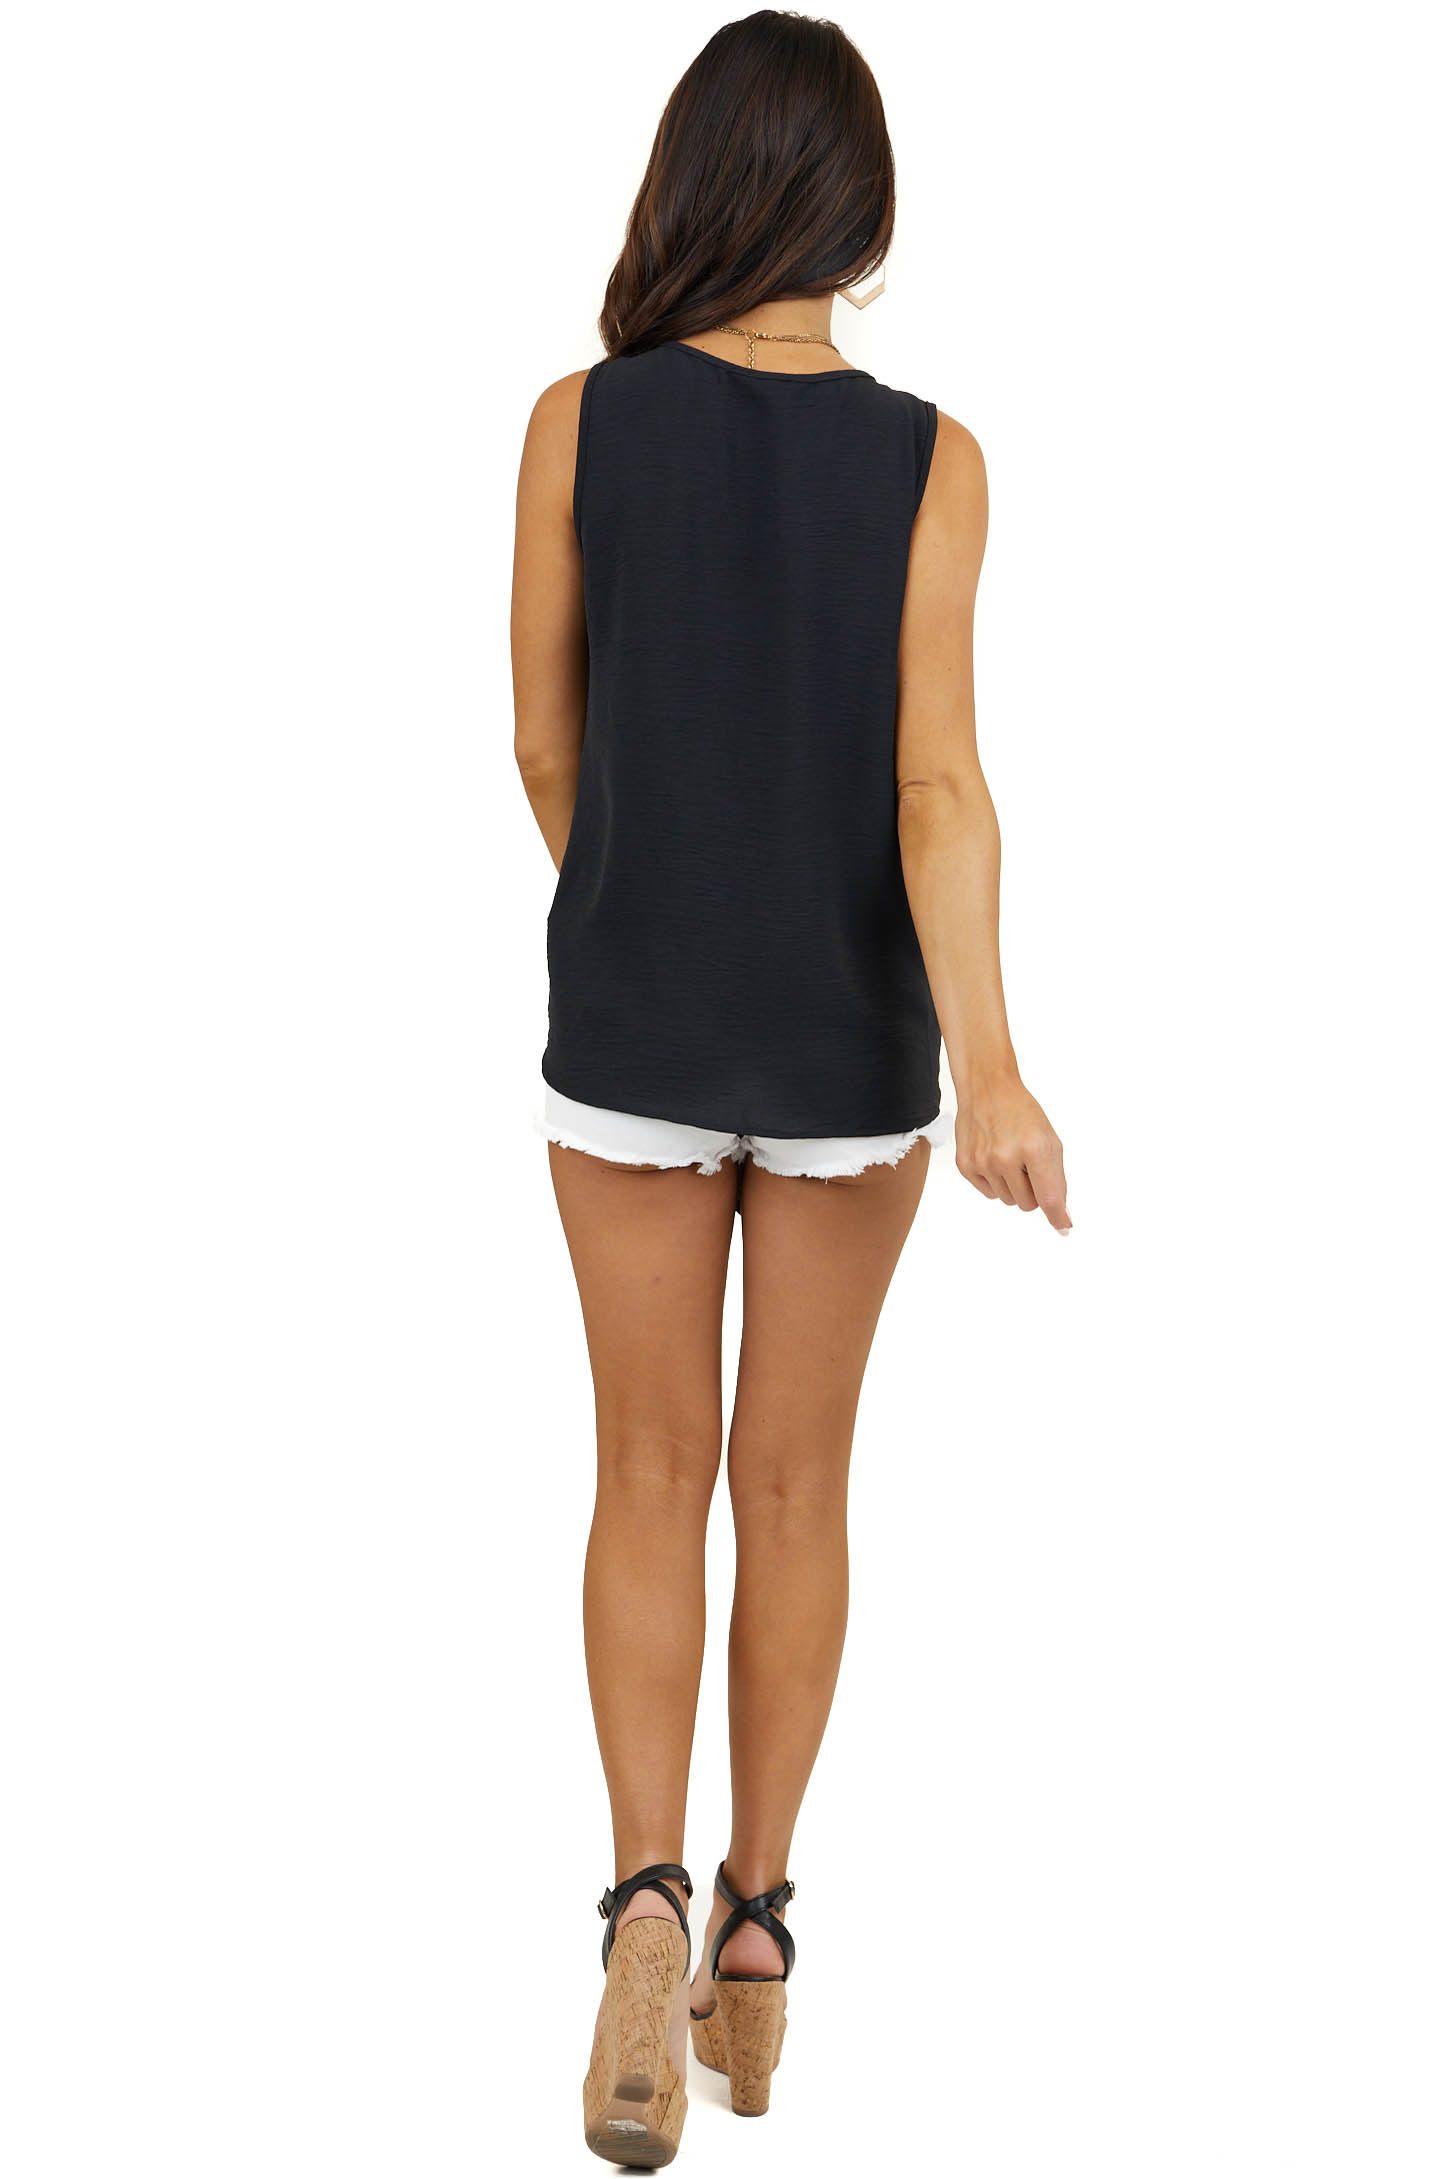 Black Sleeveless Woven Round Neck Top with Front Tie Detail